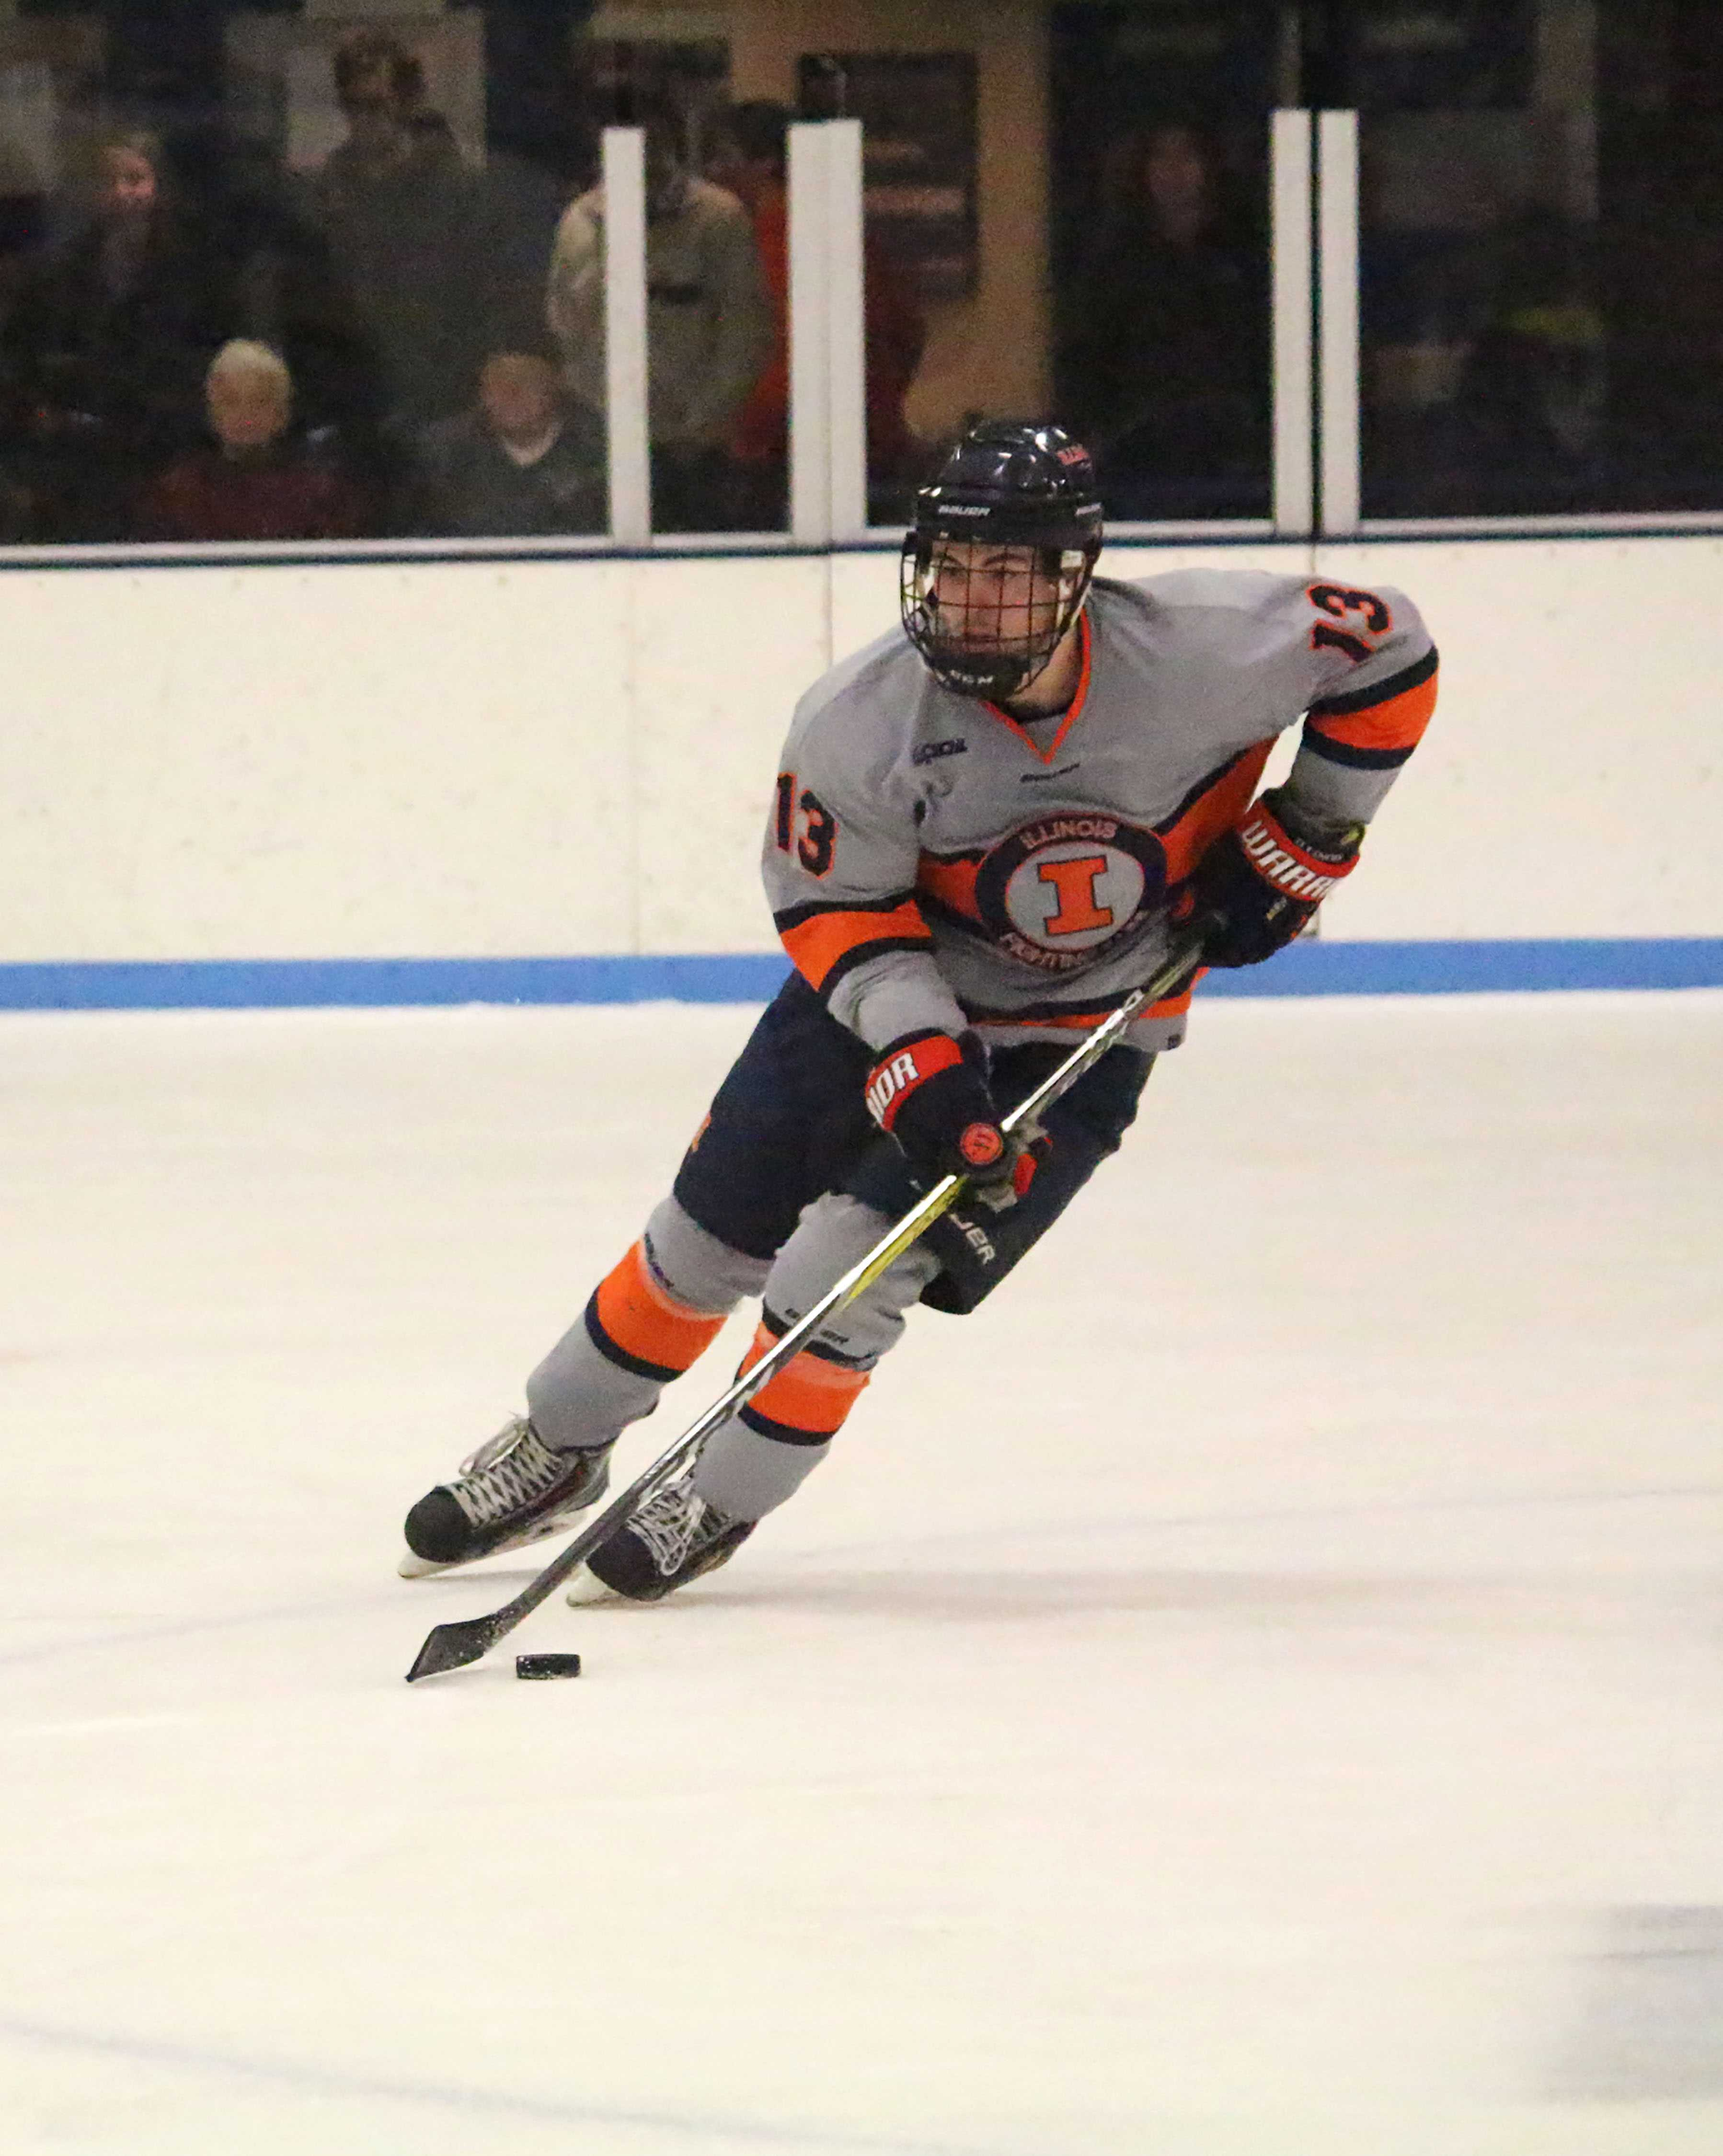 James McGing (13) gains possession against Lindenwood to take the puck up the ice at the Ice Arena on Friday, Jan. 20th. Illini lost to Lindenwood 2-6.